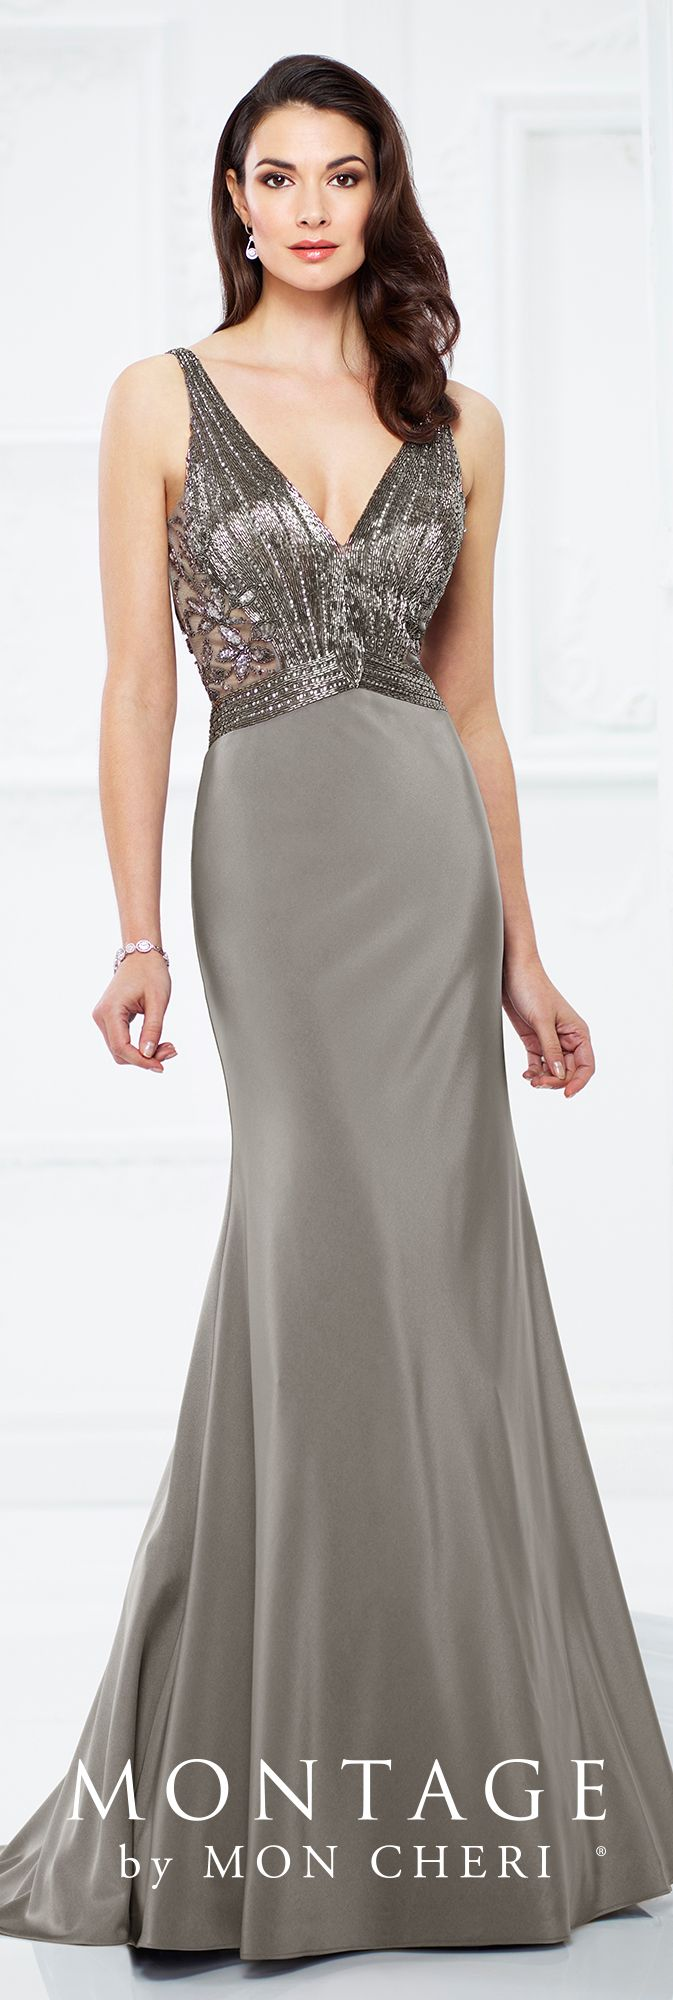 Montage by mon cheri grey evening dresses bodice and formal